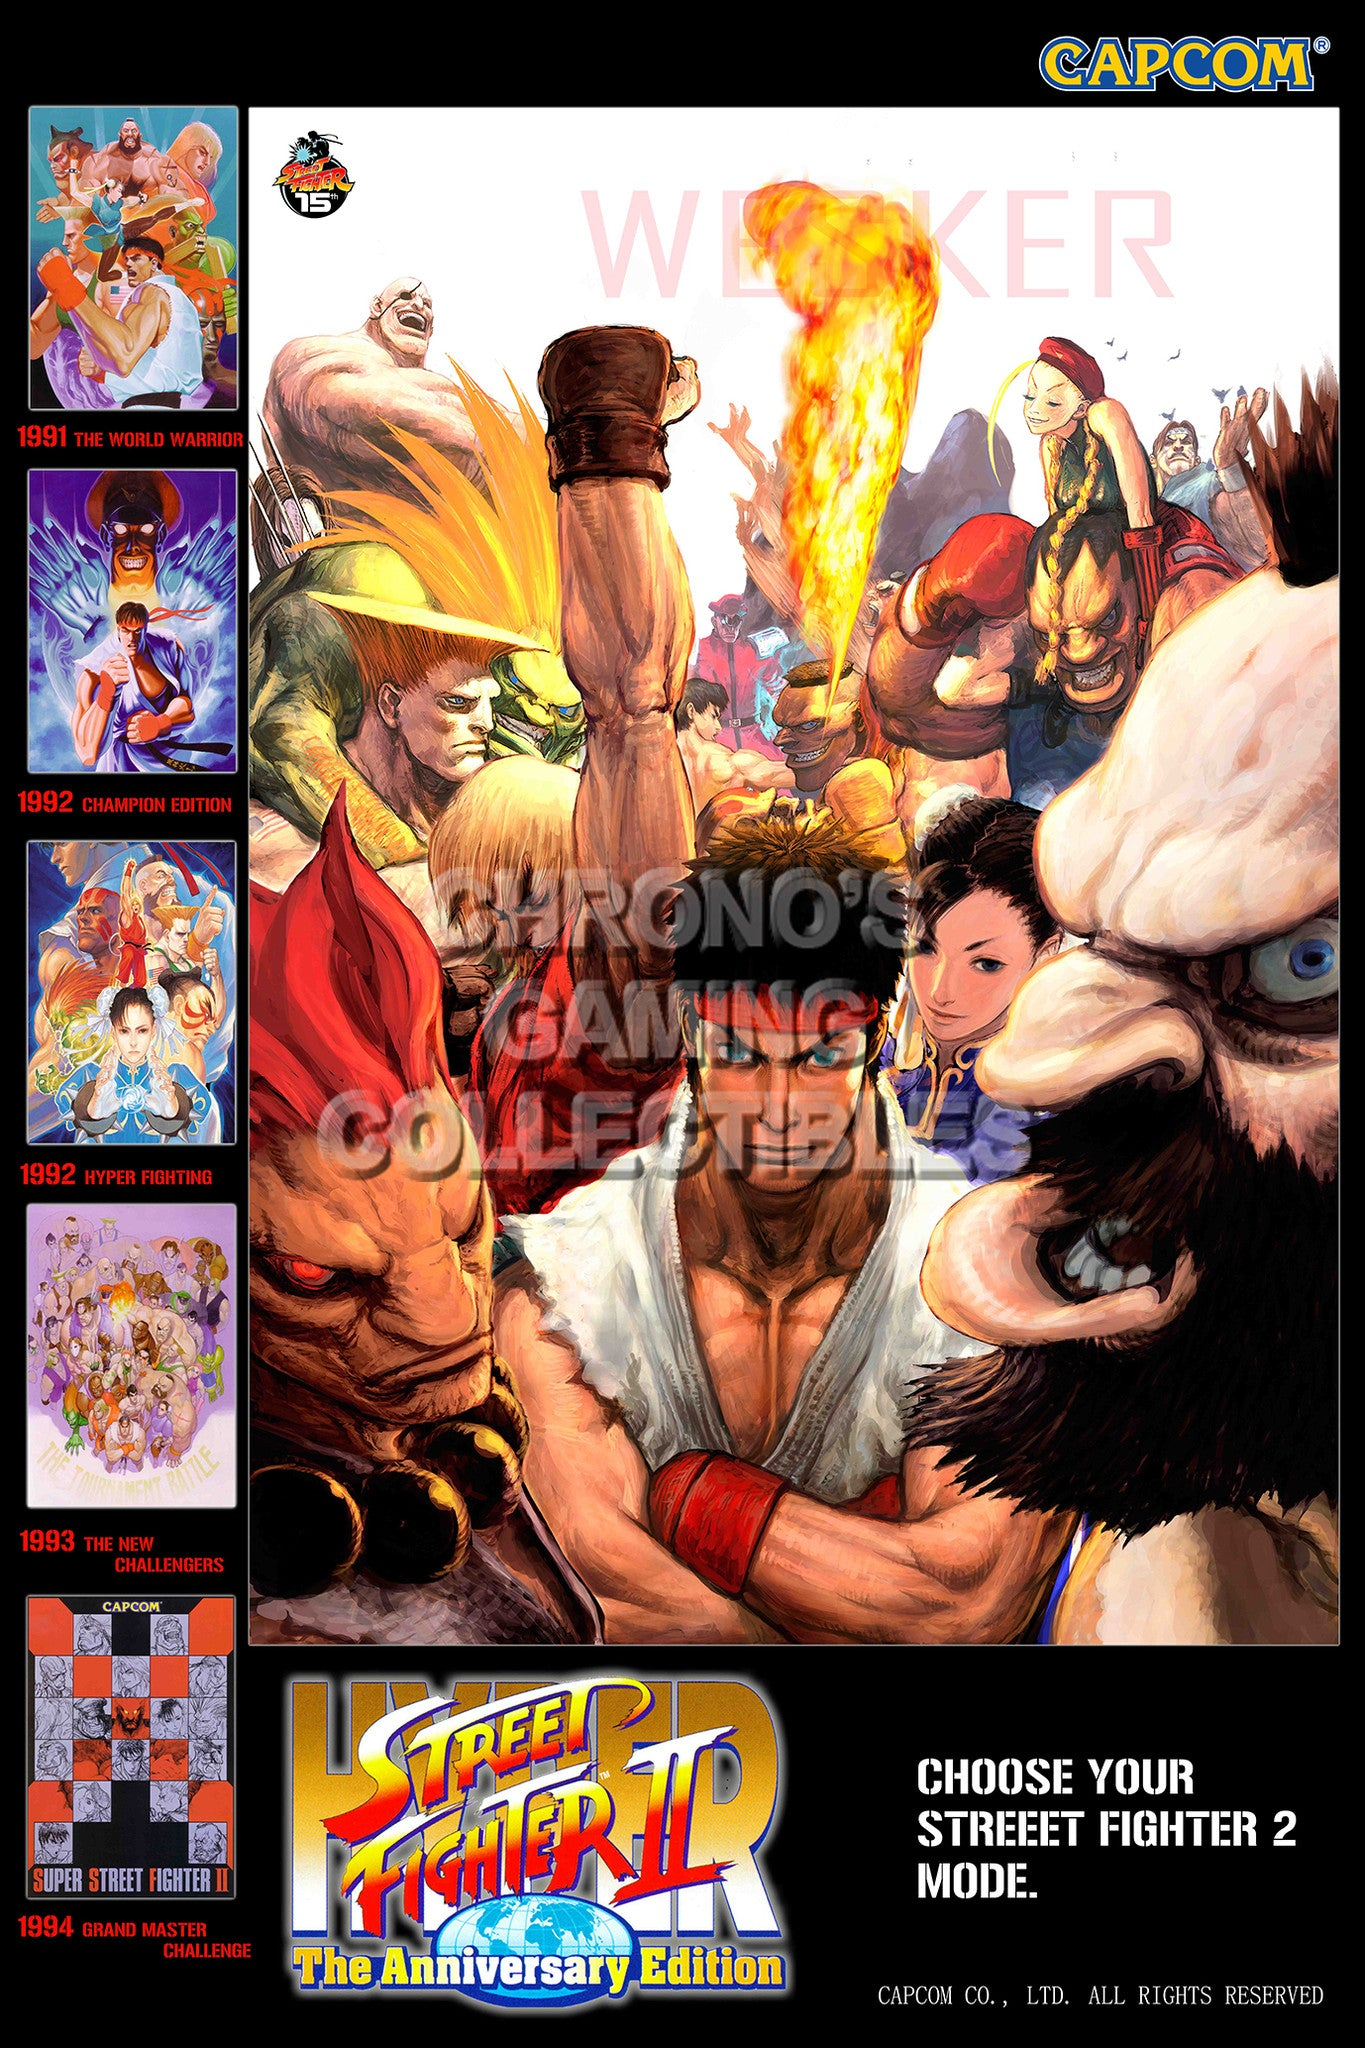 Street Fighter Video Games Poster Cgcposters